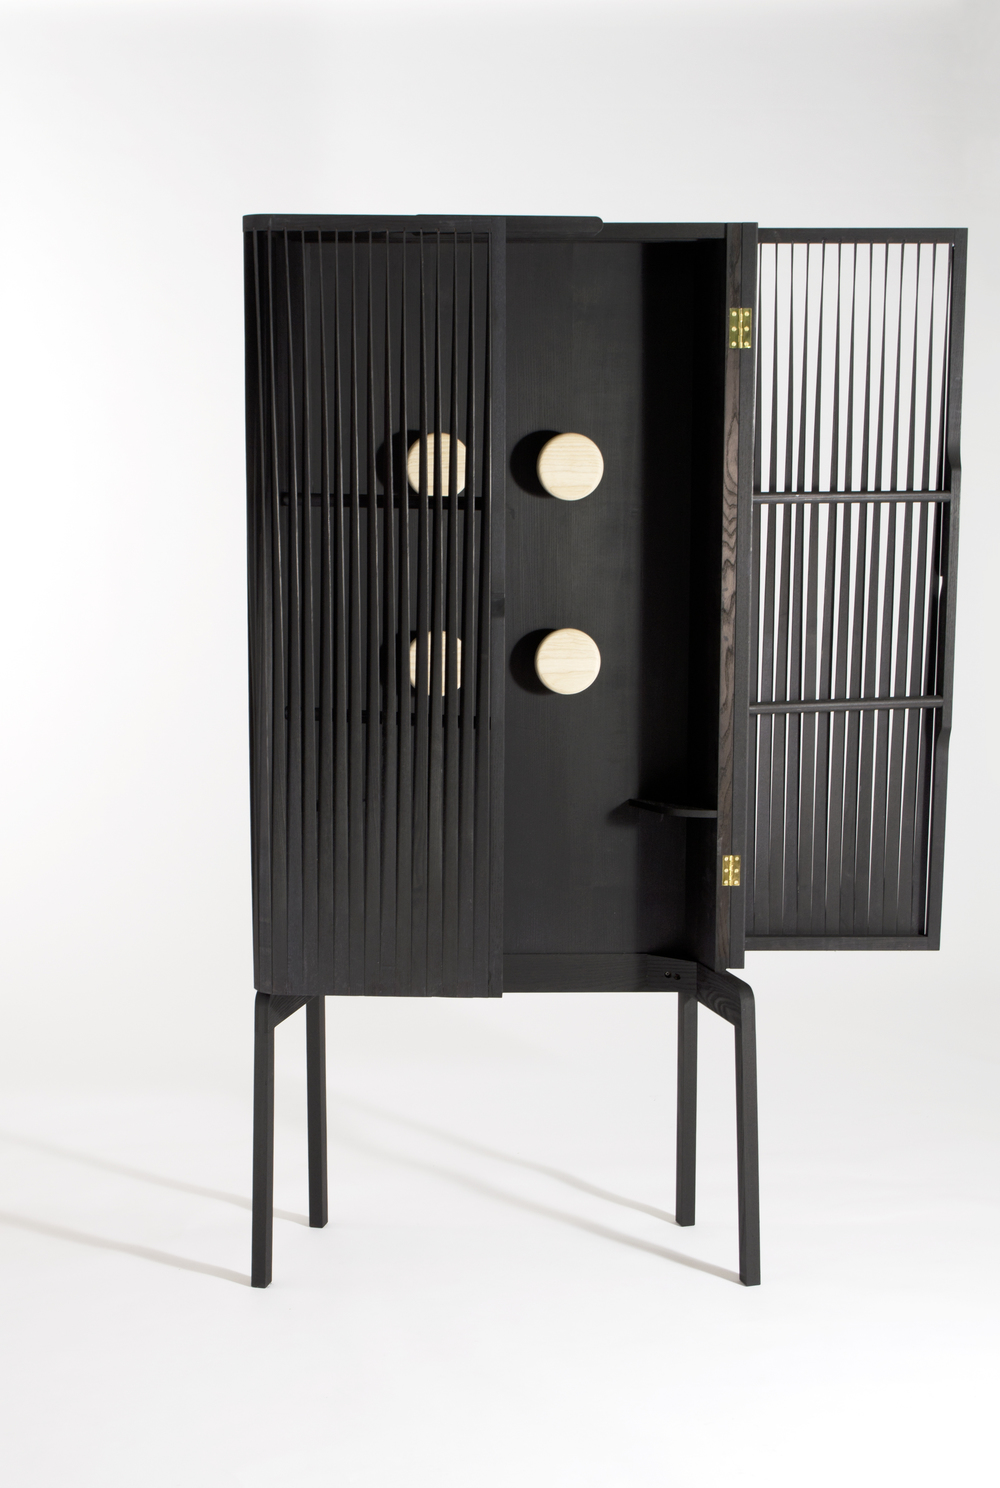 Cabinet by Charlie Styrbjörn Nilsson in collaboration with Olle K Engberg and Ludwig Berg (5).jpg